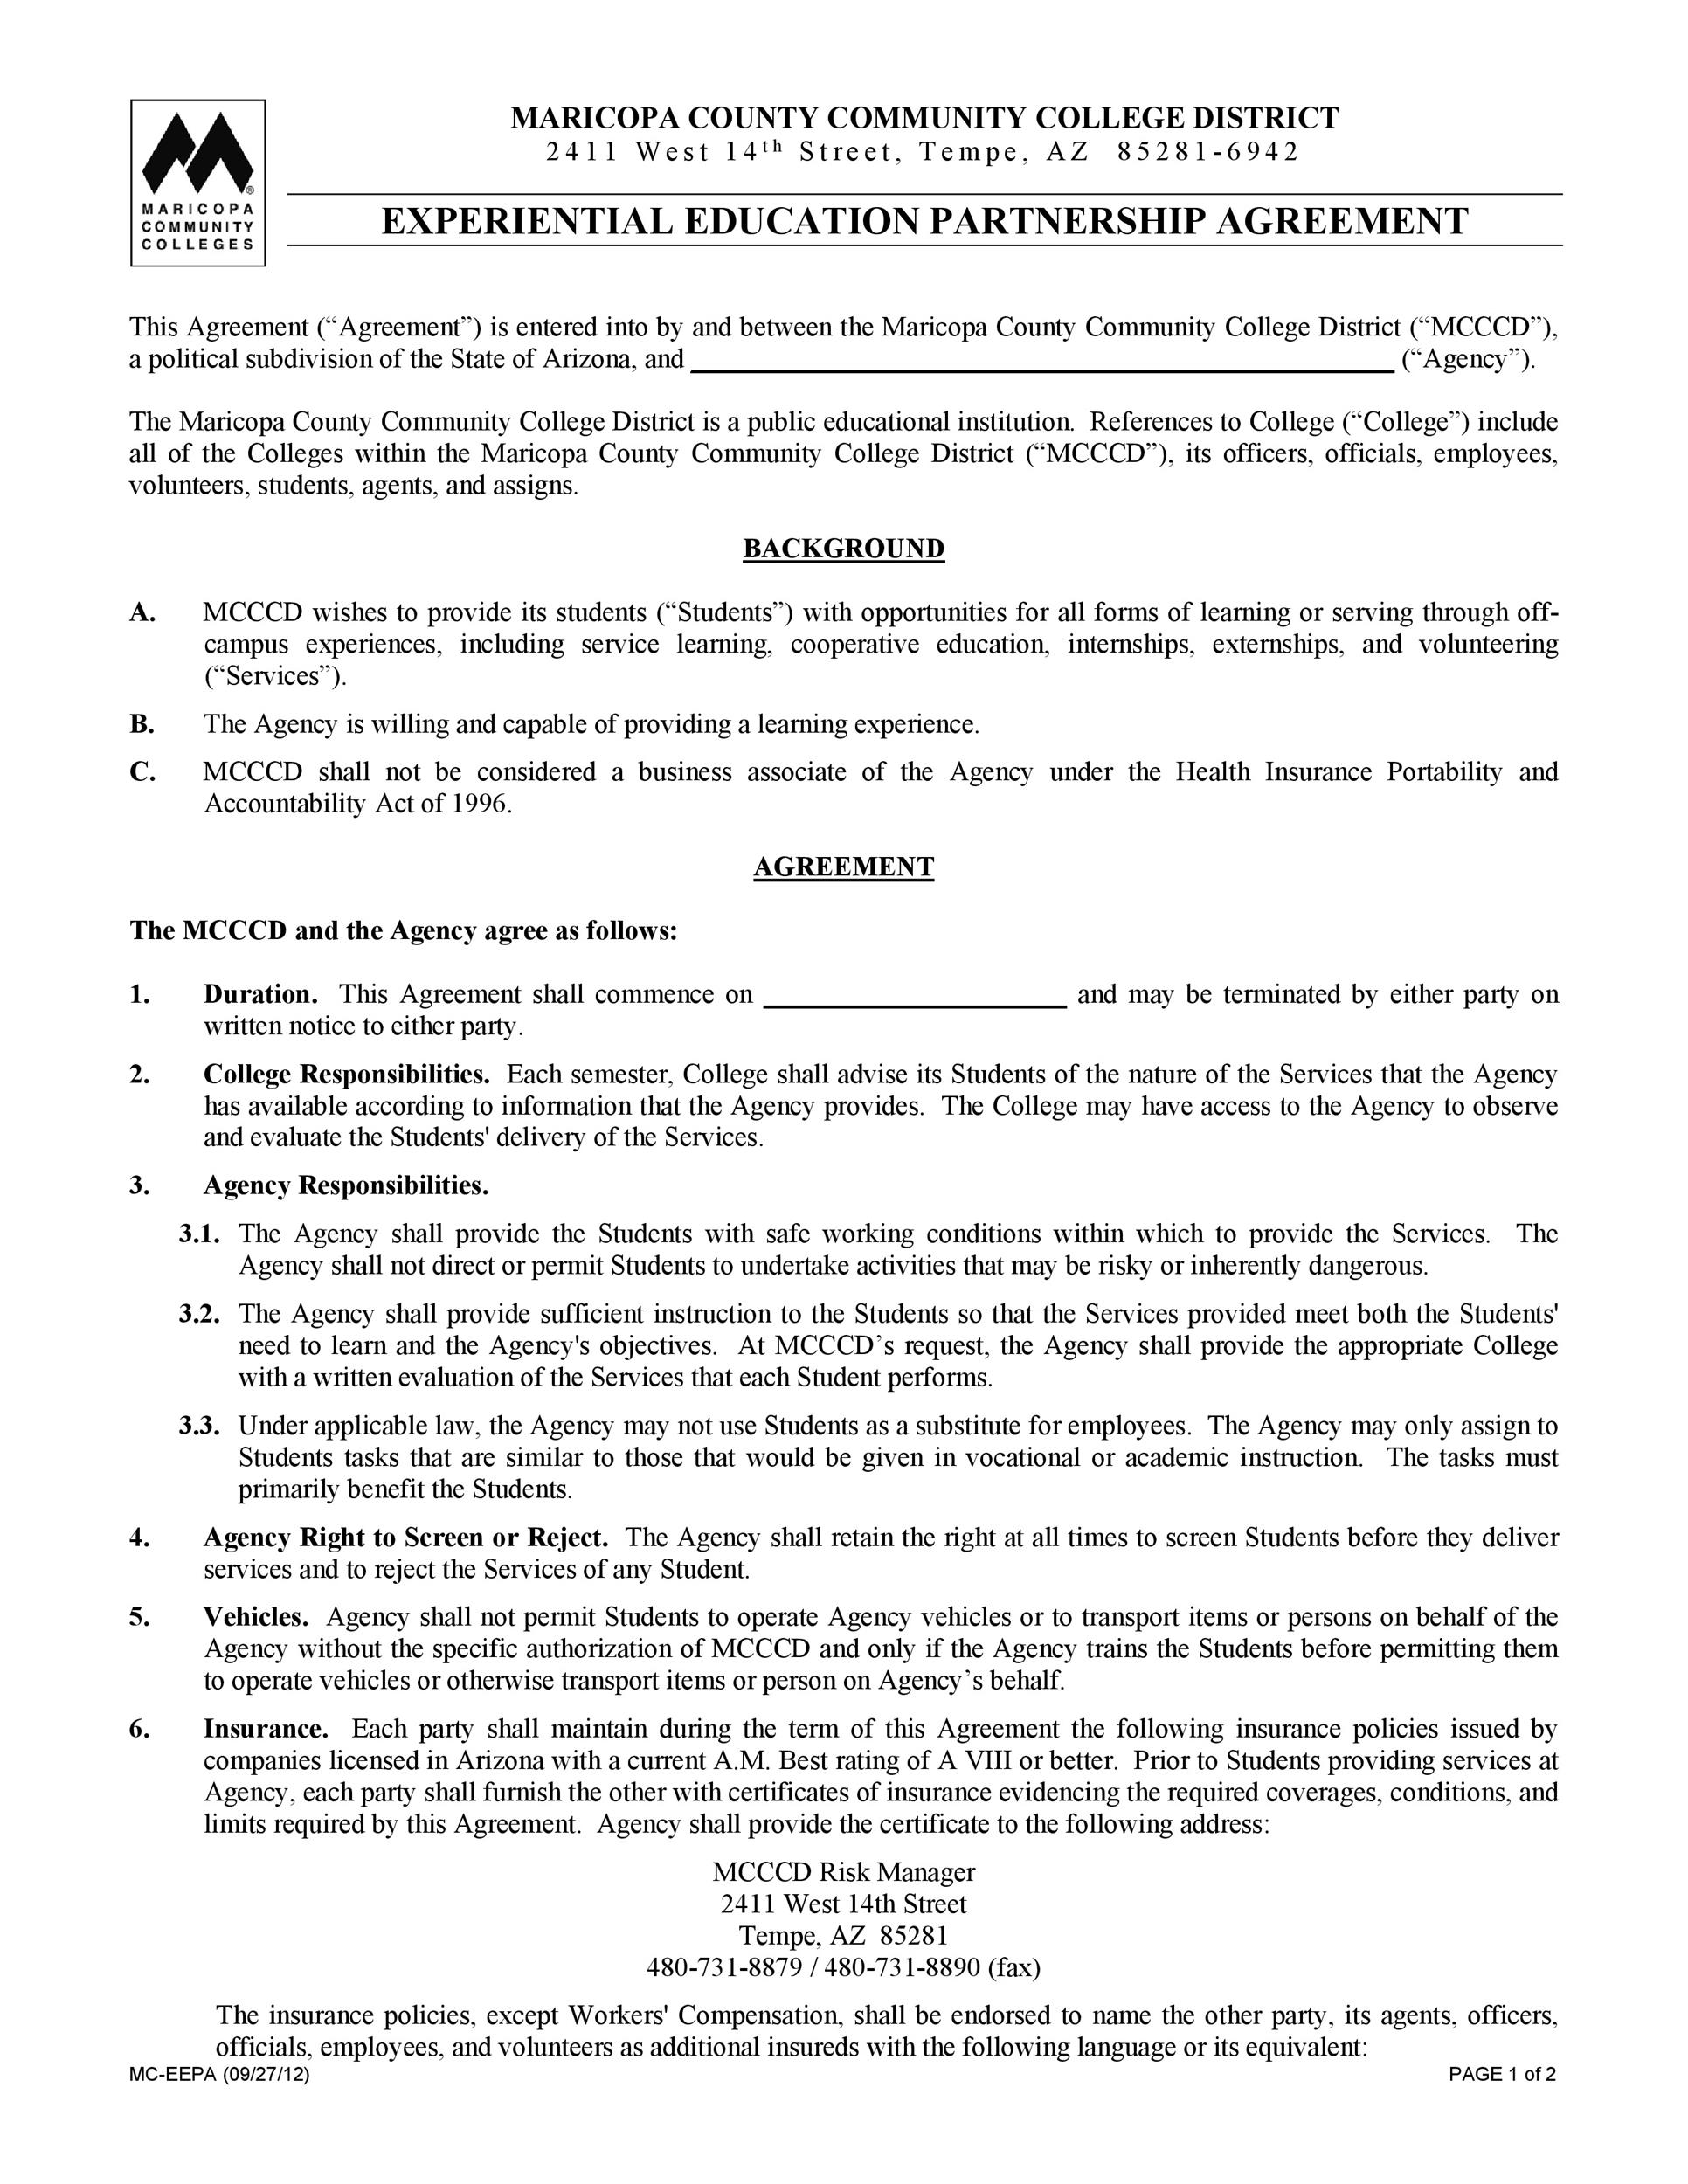 Partnership Agreement Template 26